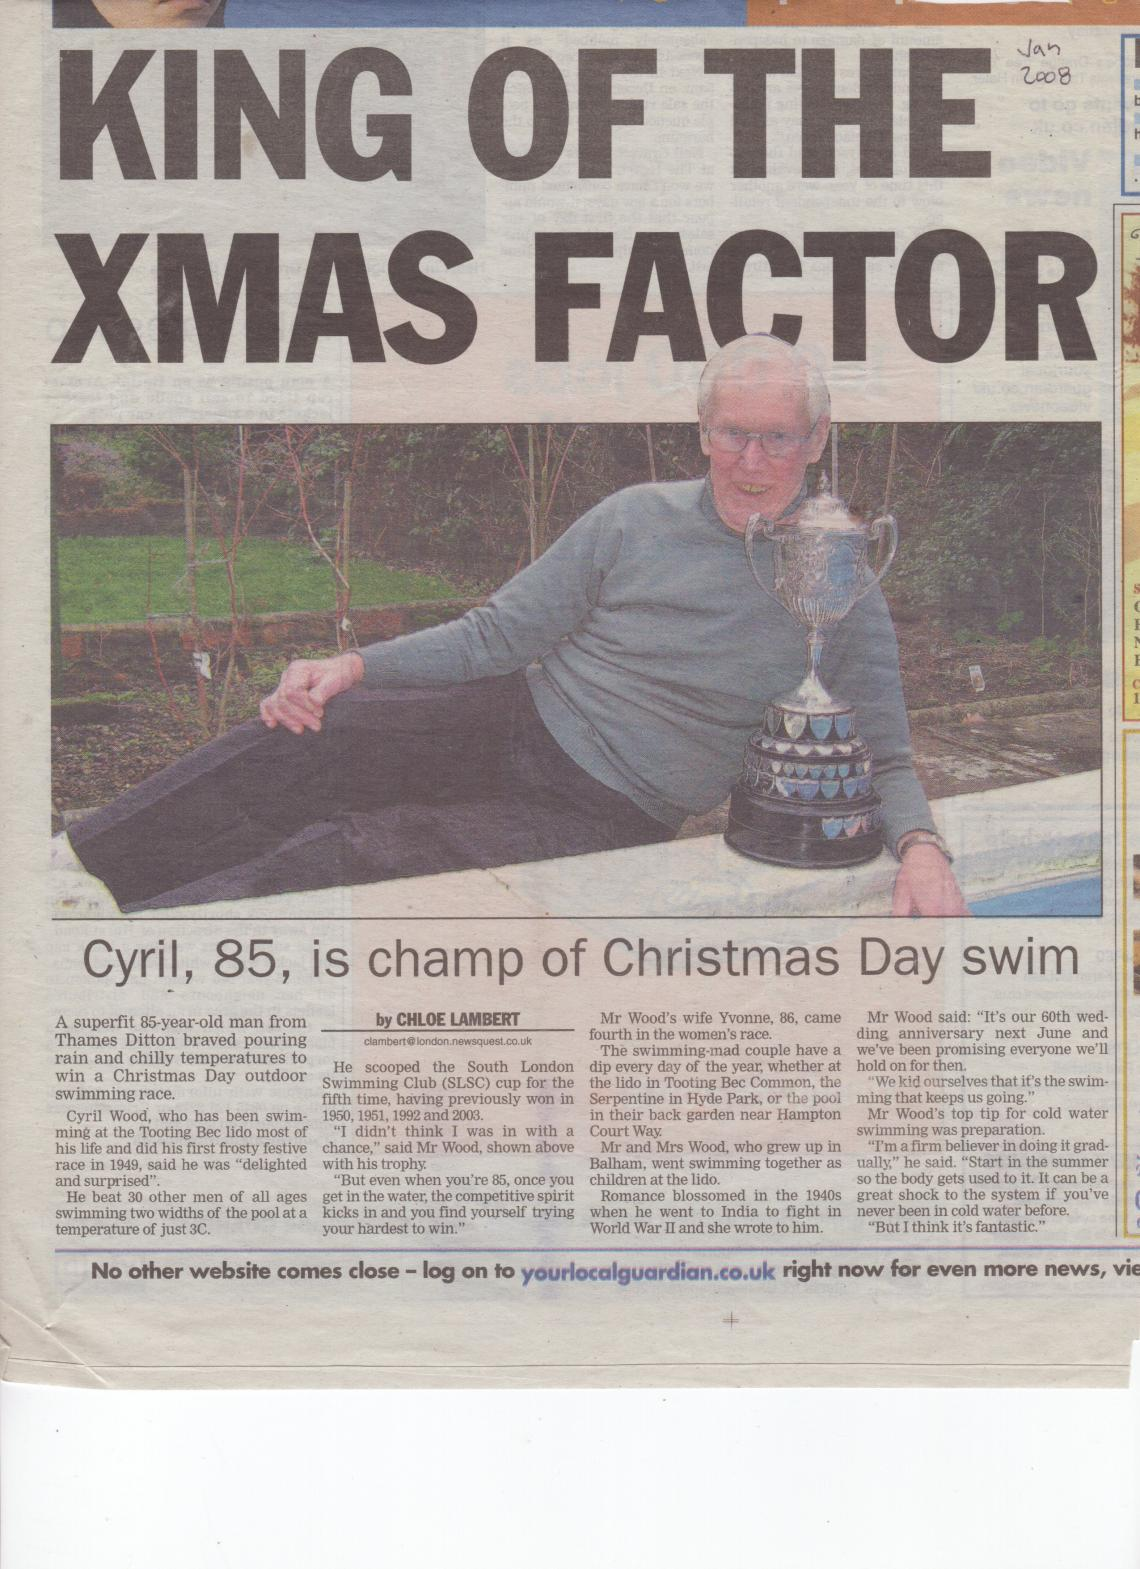 Cyril again made it into the local press in 2008, with Christmas victory at Tooting Bec